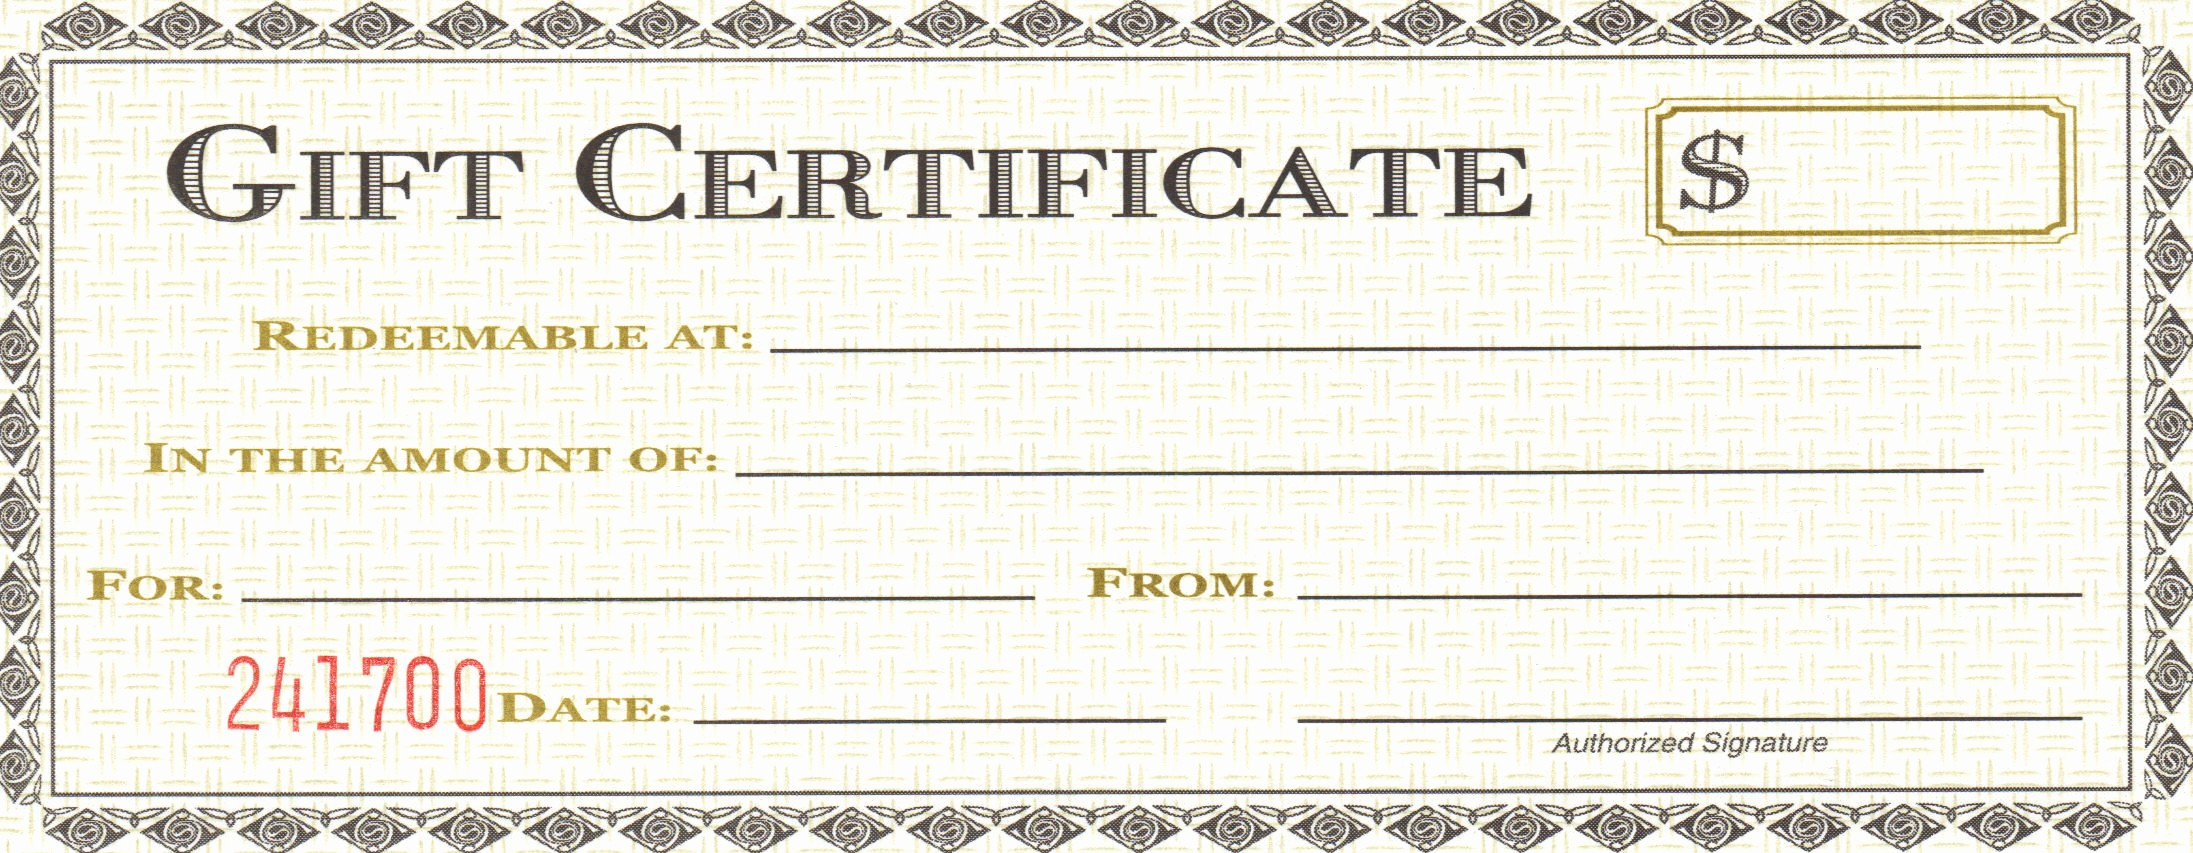 Generic Gift Certificates Print Free Fresh 18 Gift Certificate Templates Excel Pdf formats